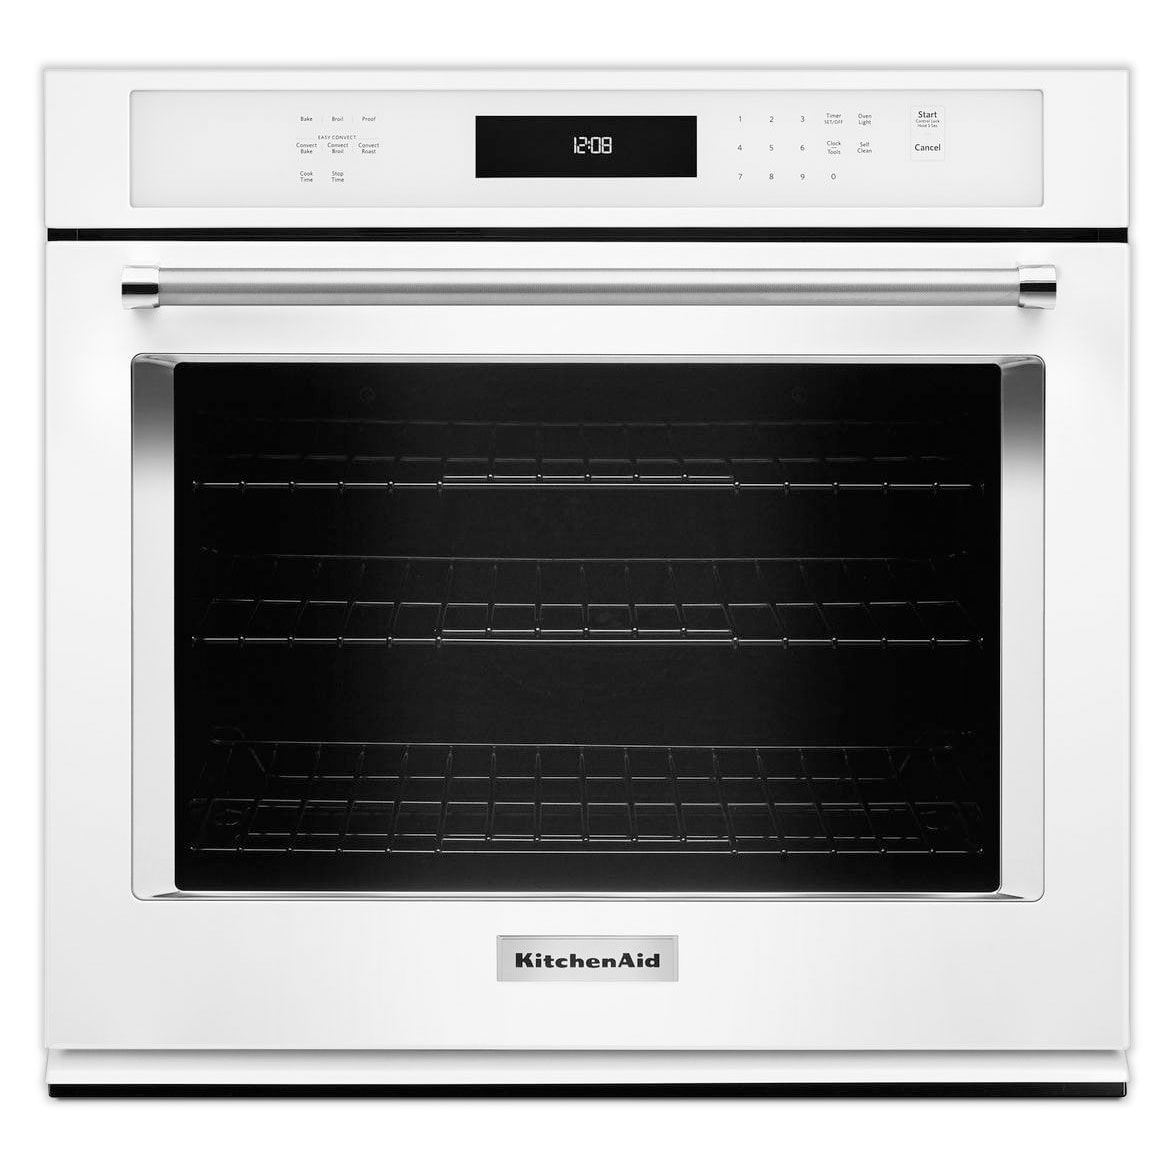 Cooking Products - KitchenAid White Convection Wall Oven (5.0 Cu. Ft.) - KOSE500EWH